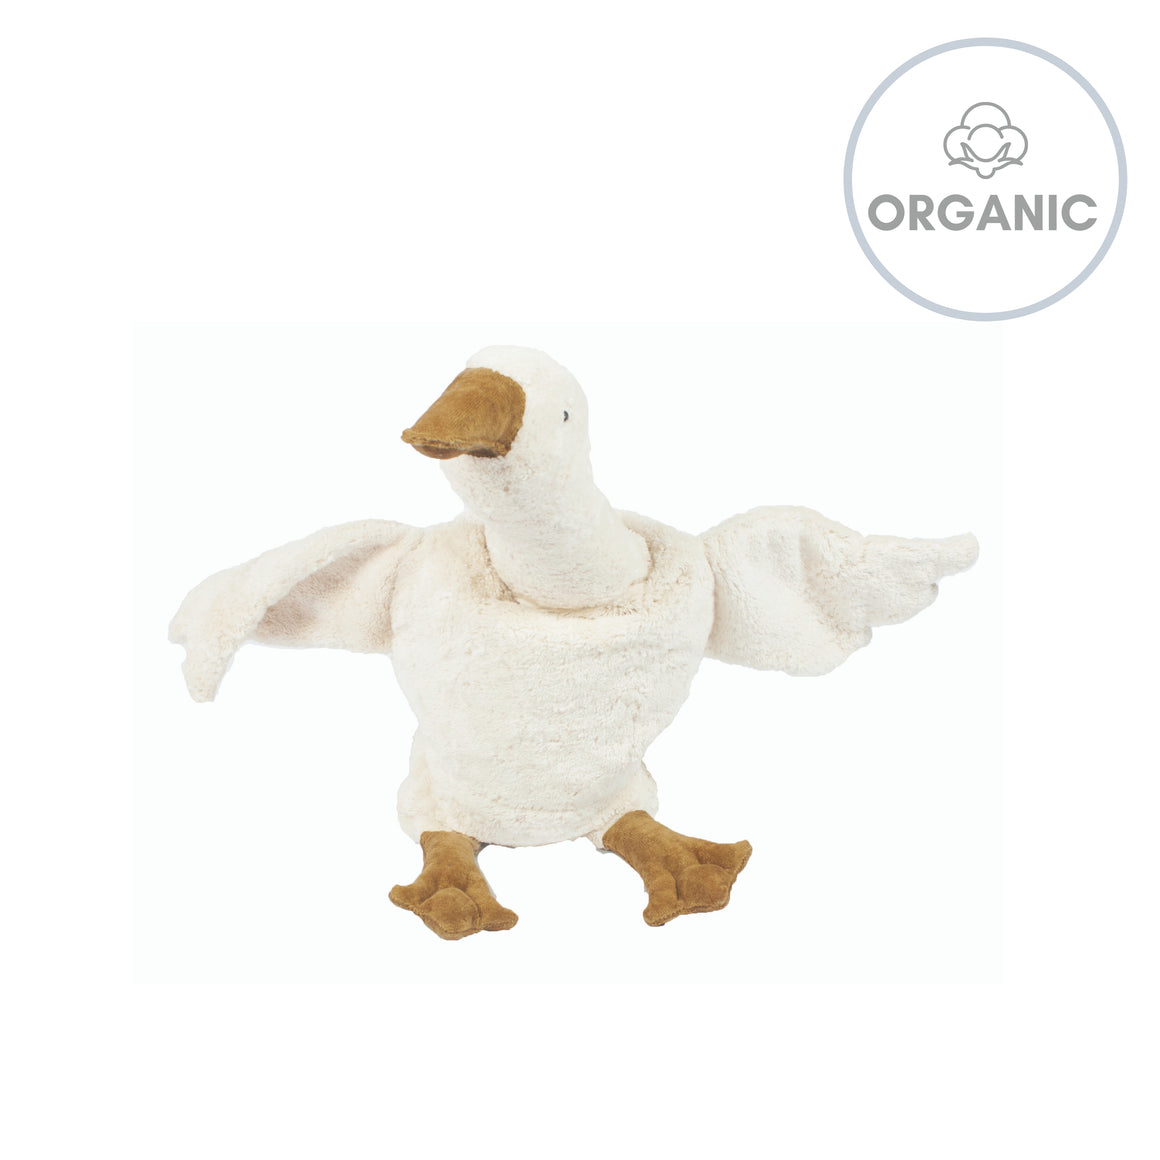 CHERRY STONE CUDDLY ANIMAL - Goose White